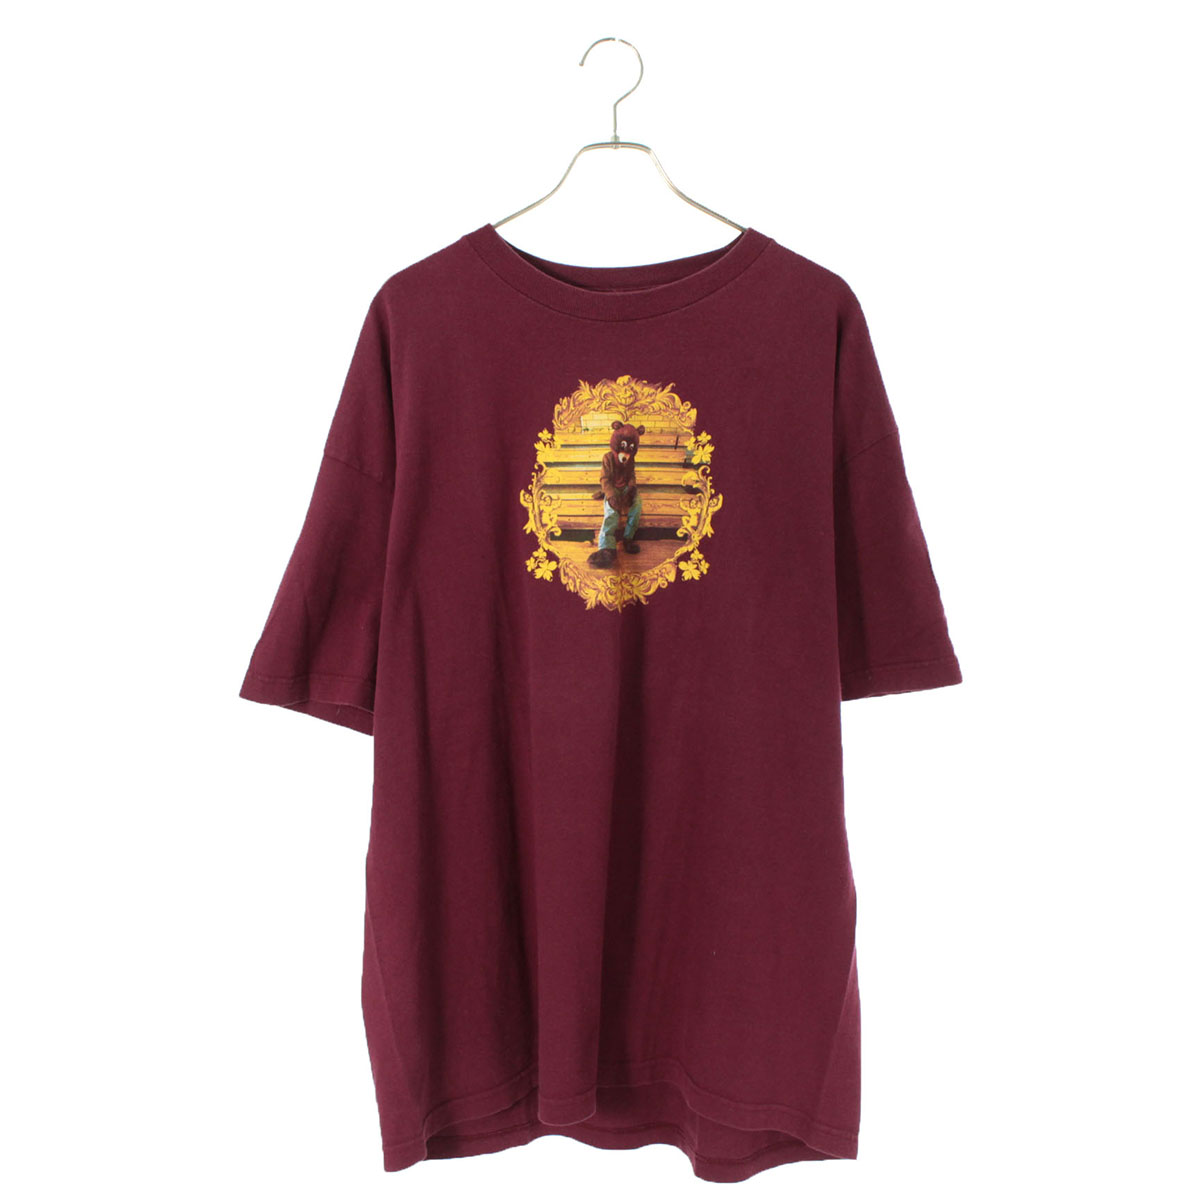 KANYE WEST THE COLLEGE DROPOUT TEE